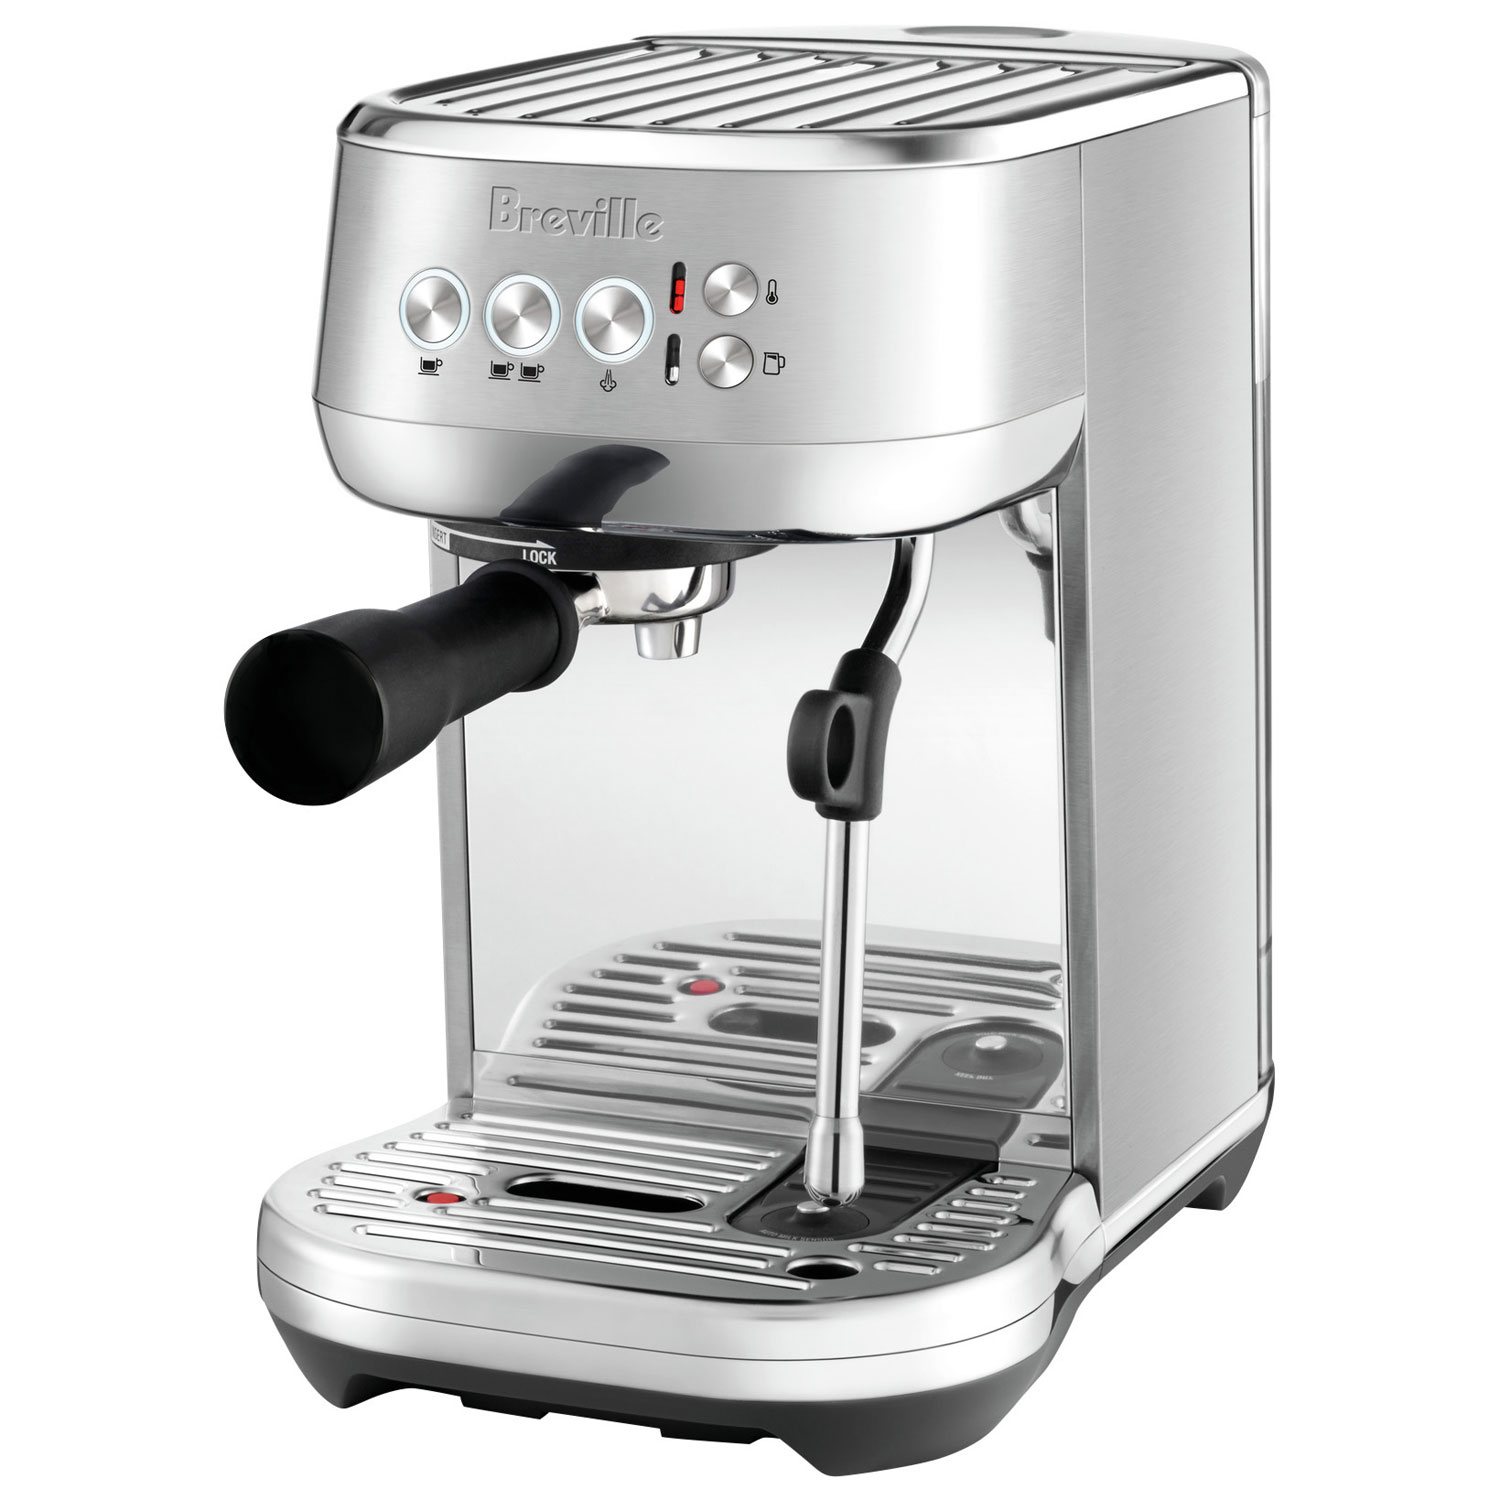 12 days of christmas - breville bambino plus manual expresso machine